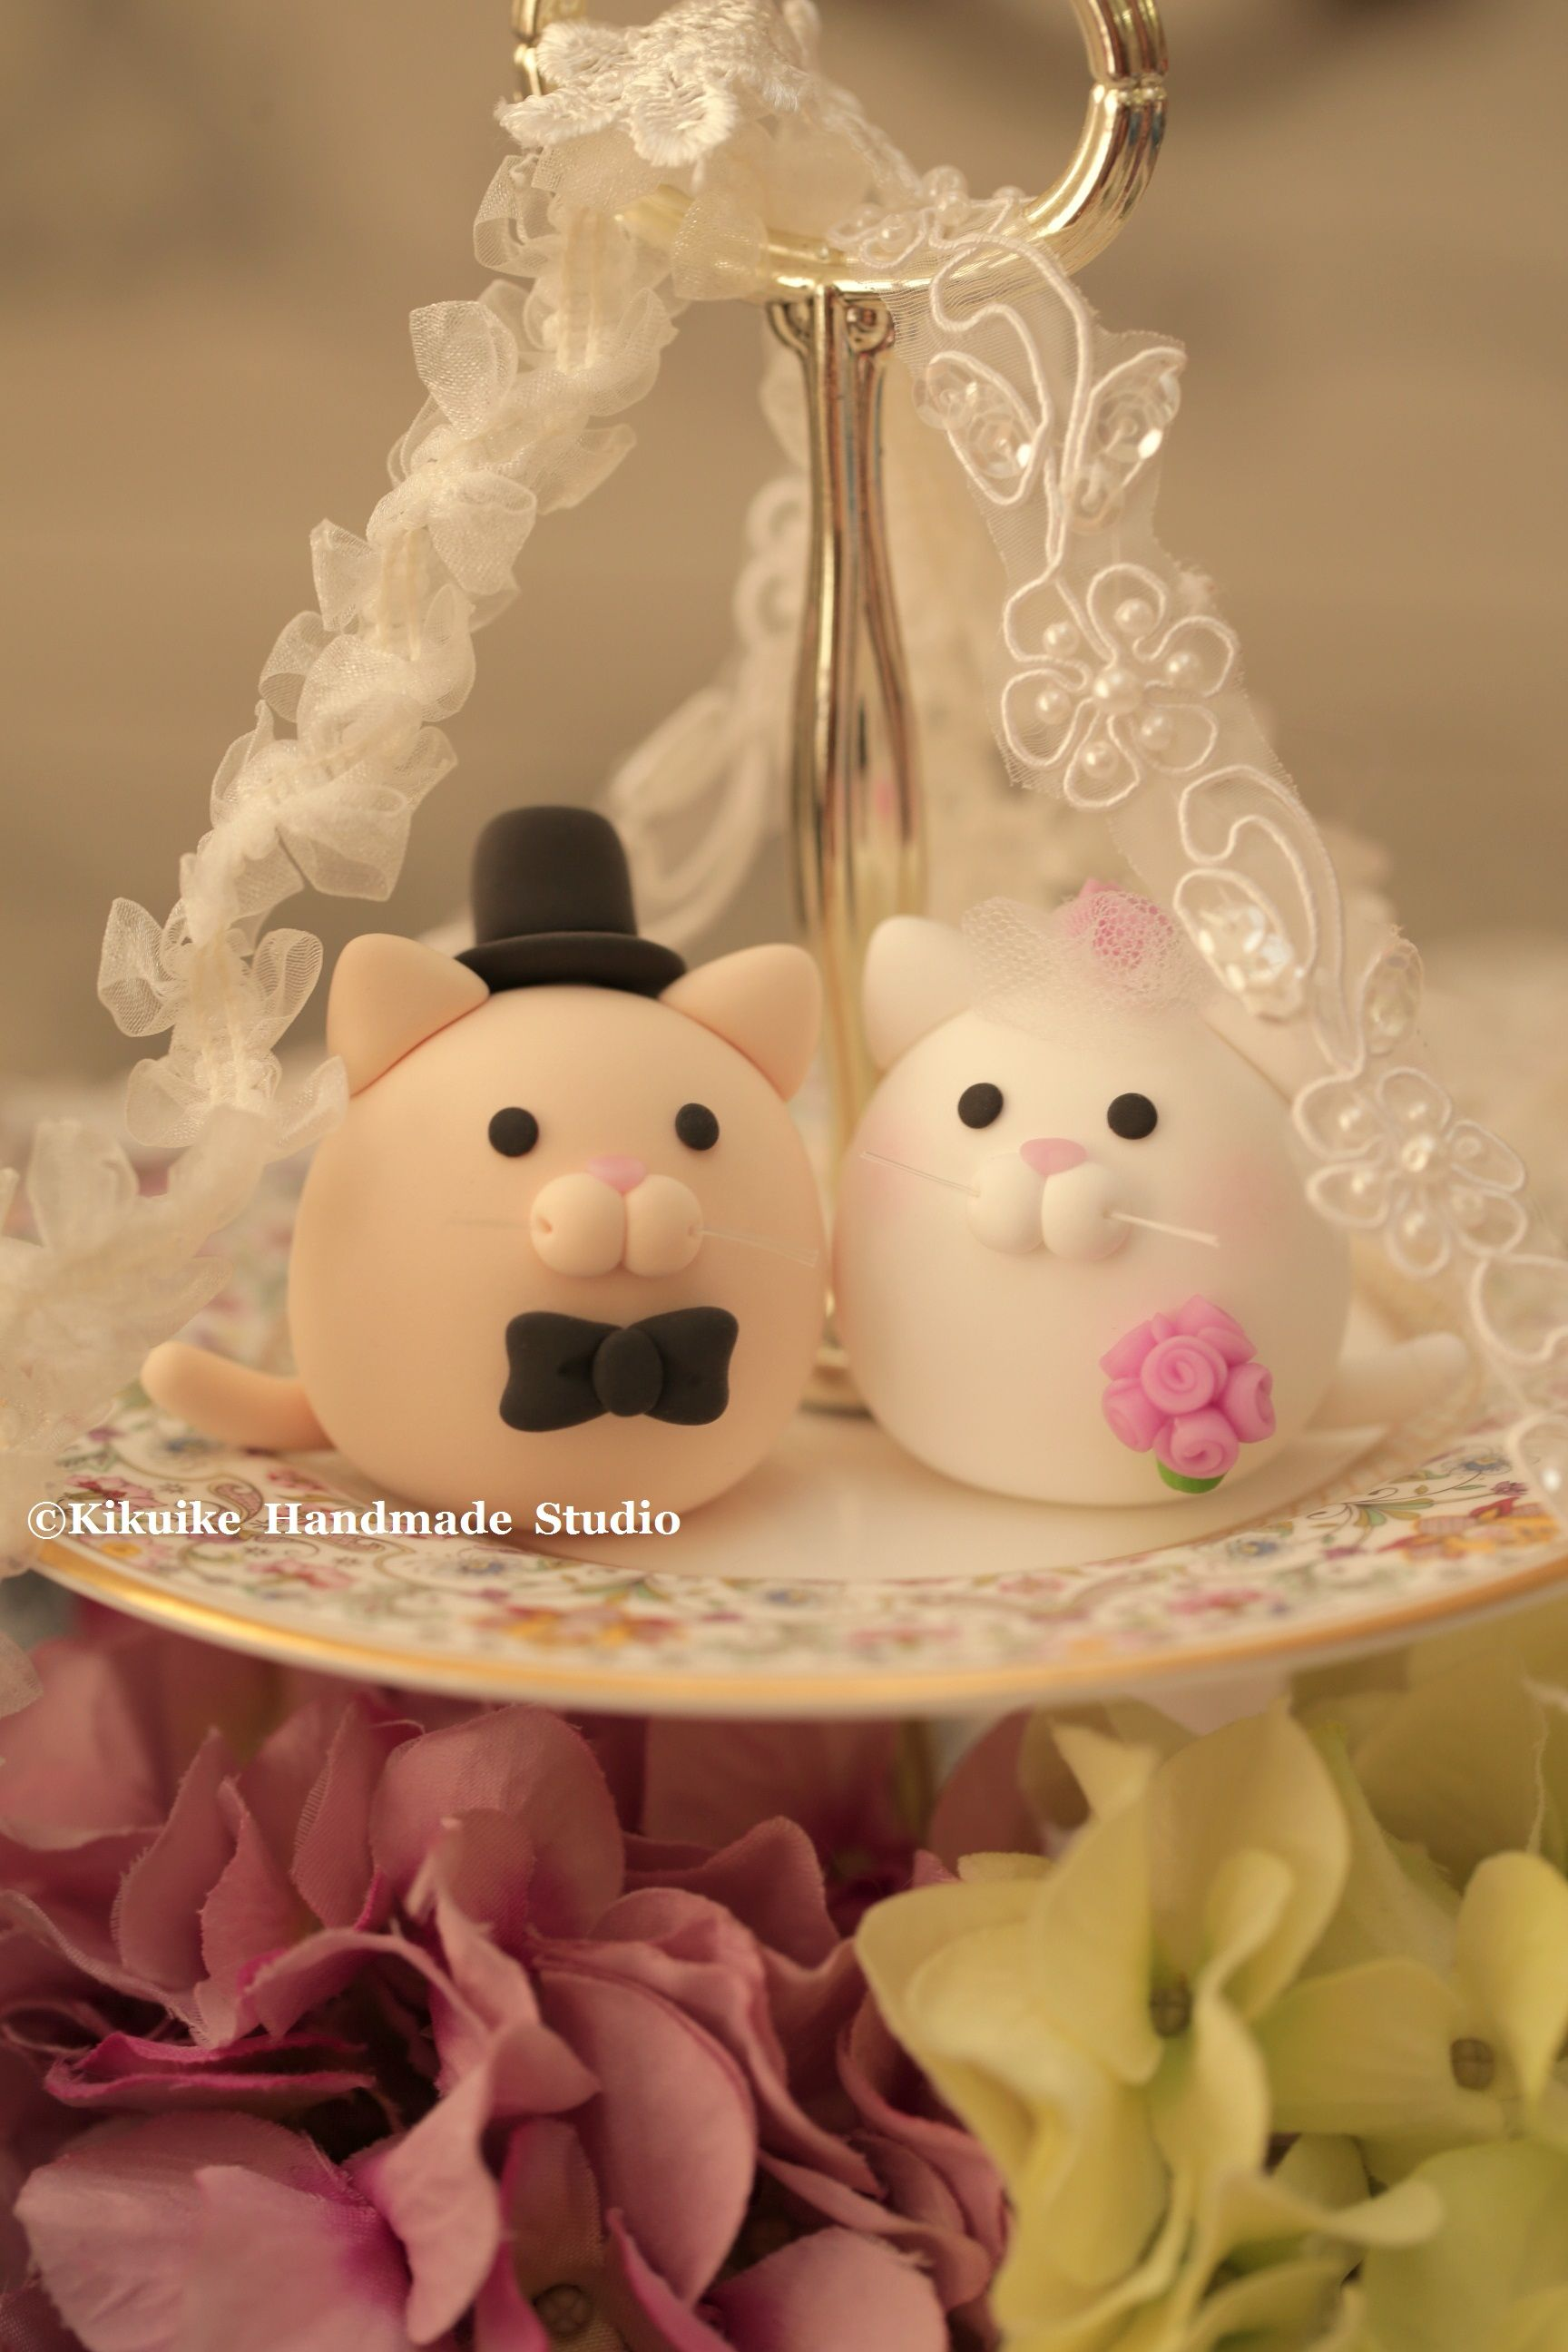 kitty and Cat wedding cake topper | Wedding ideas! | Pinterest ...